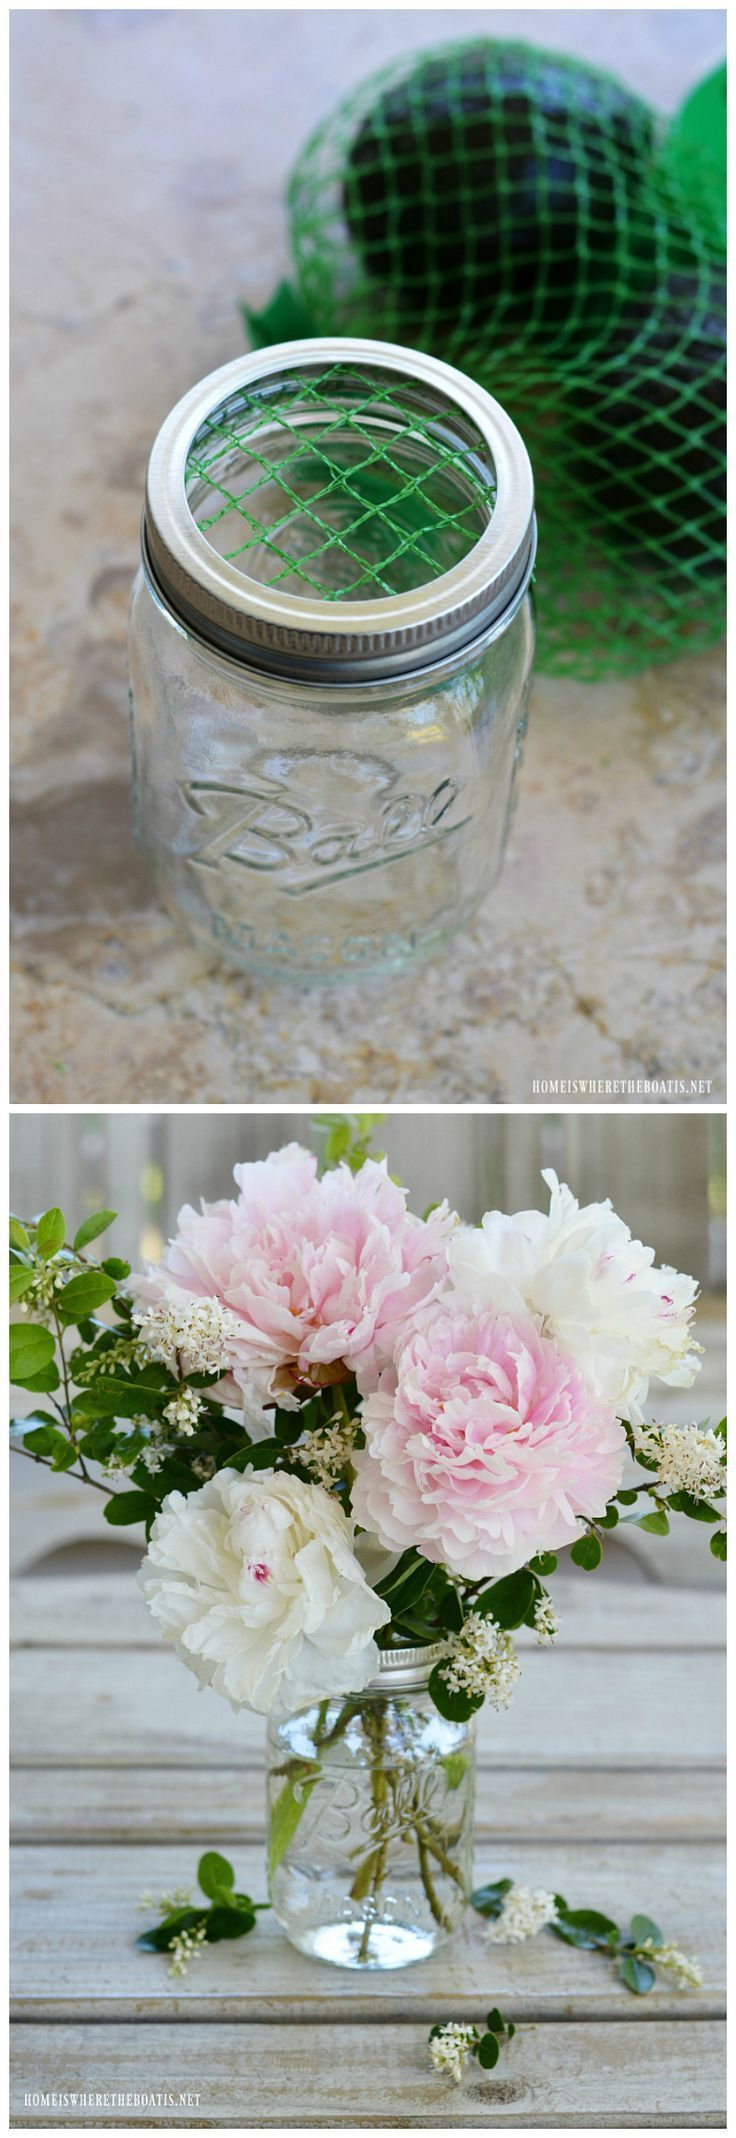 Garden Bouquet Tips and Flower Arranging Hack using something you usually throw away!   homeiswheretheboatis.net